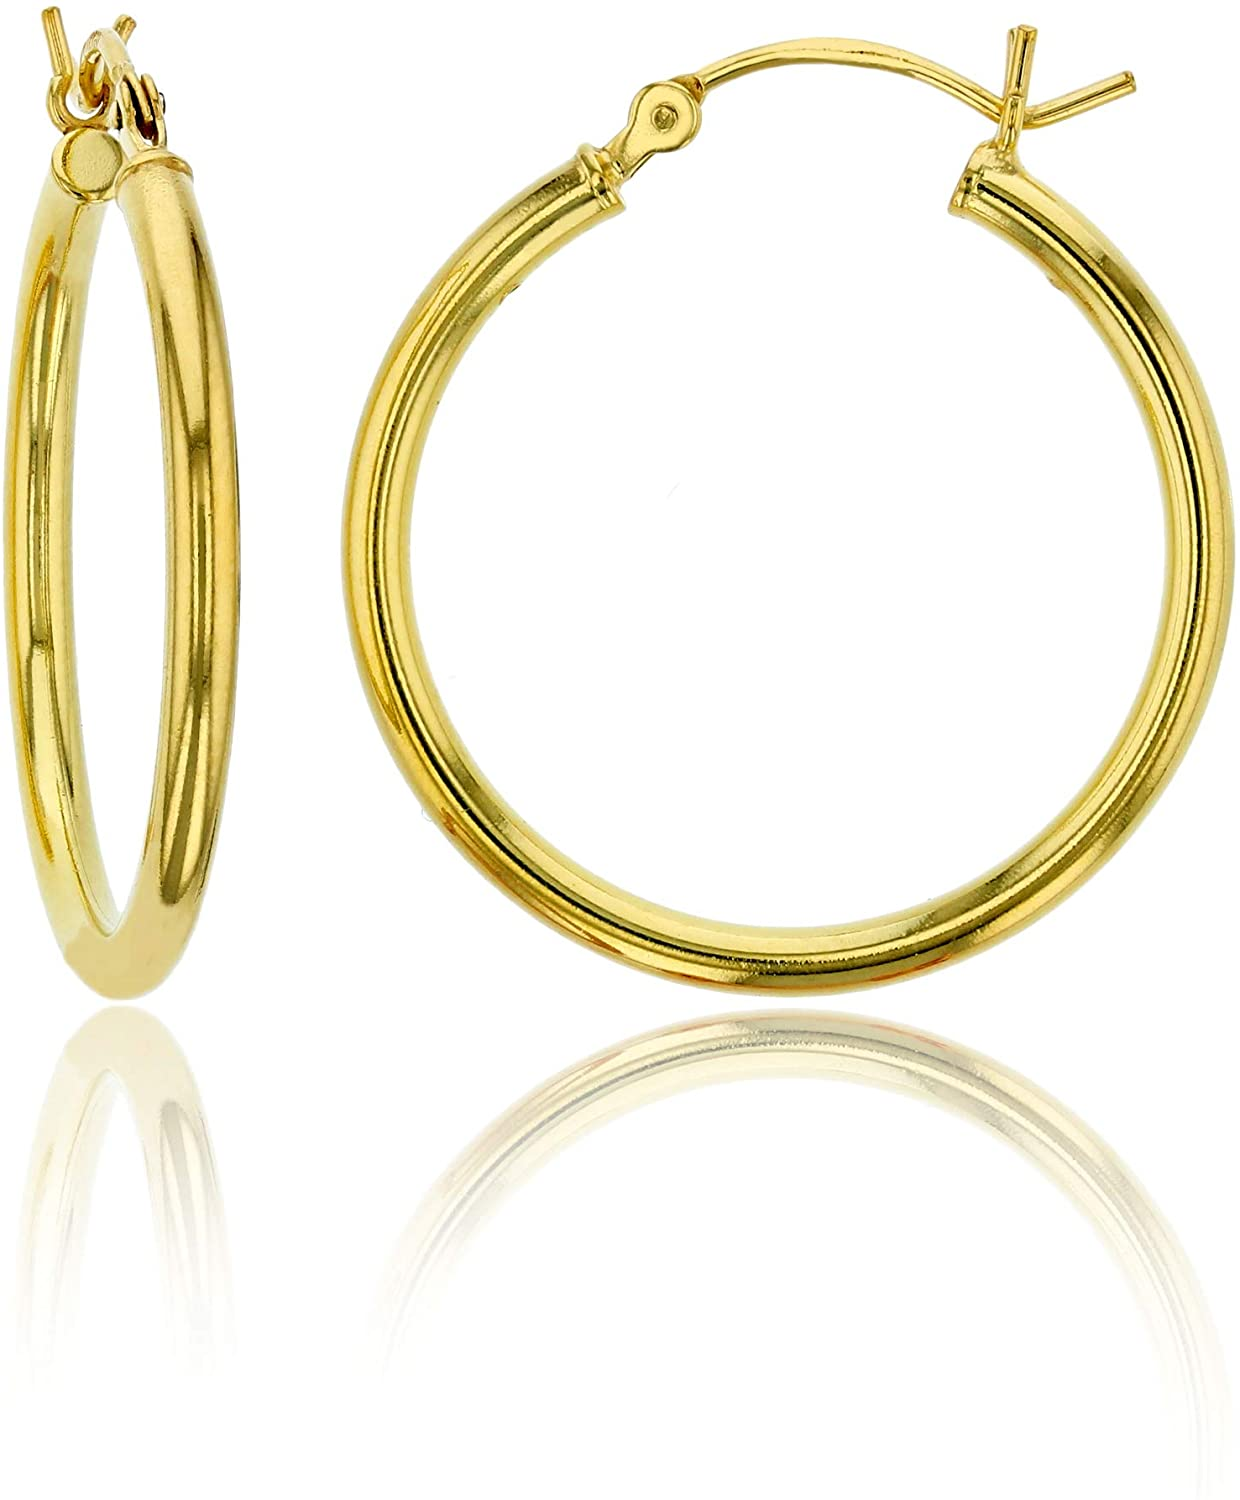 14K Gold Plated 925 Sterling Silver High Polished Hoop Earrings for Women | 1mm-4mm Thick Hoops | Secure Snap Bar Closure | Shiny Classic Earrings, 10mm-70mm